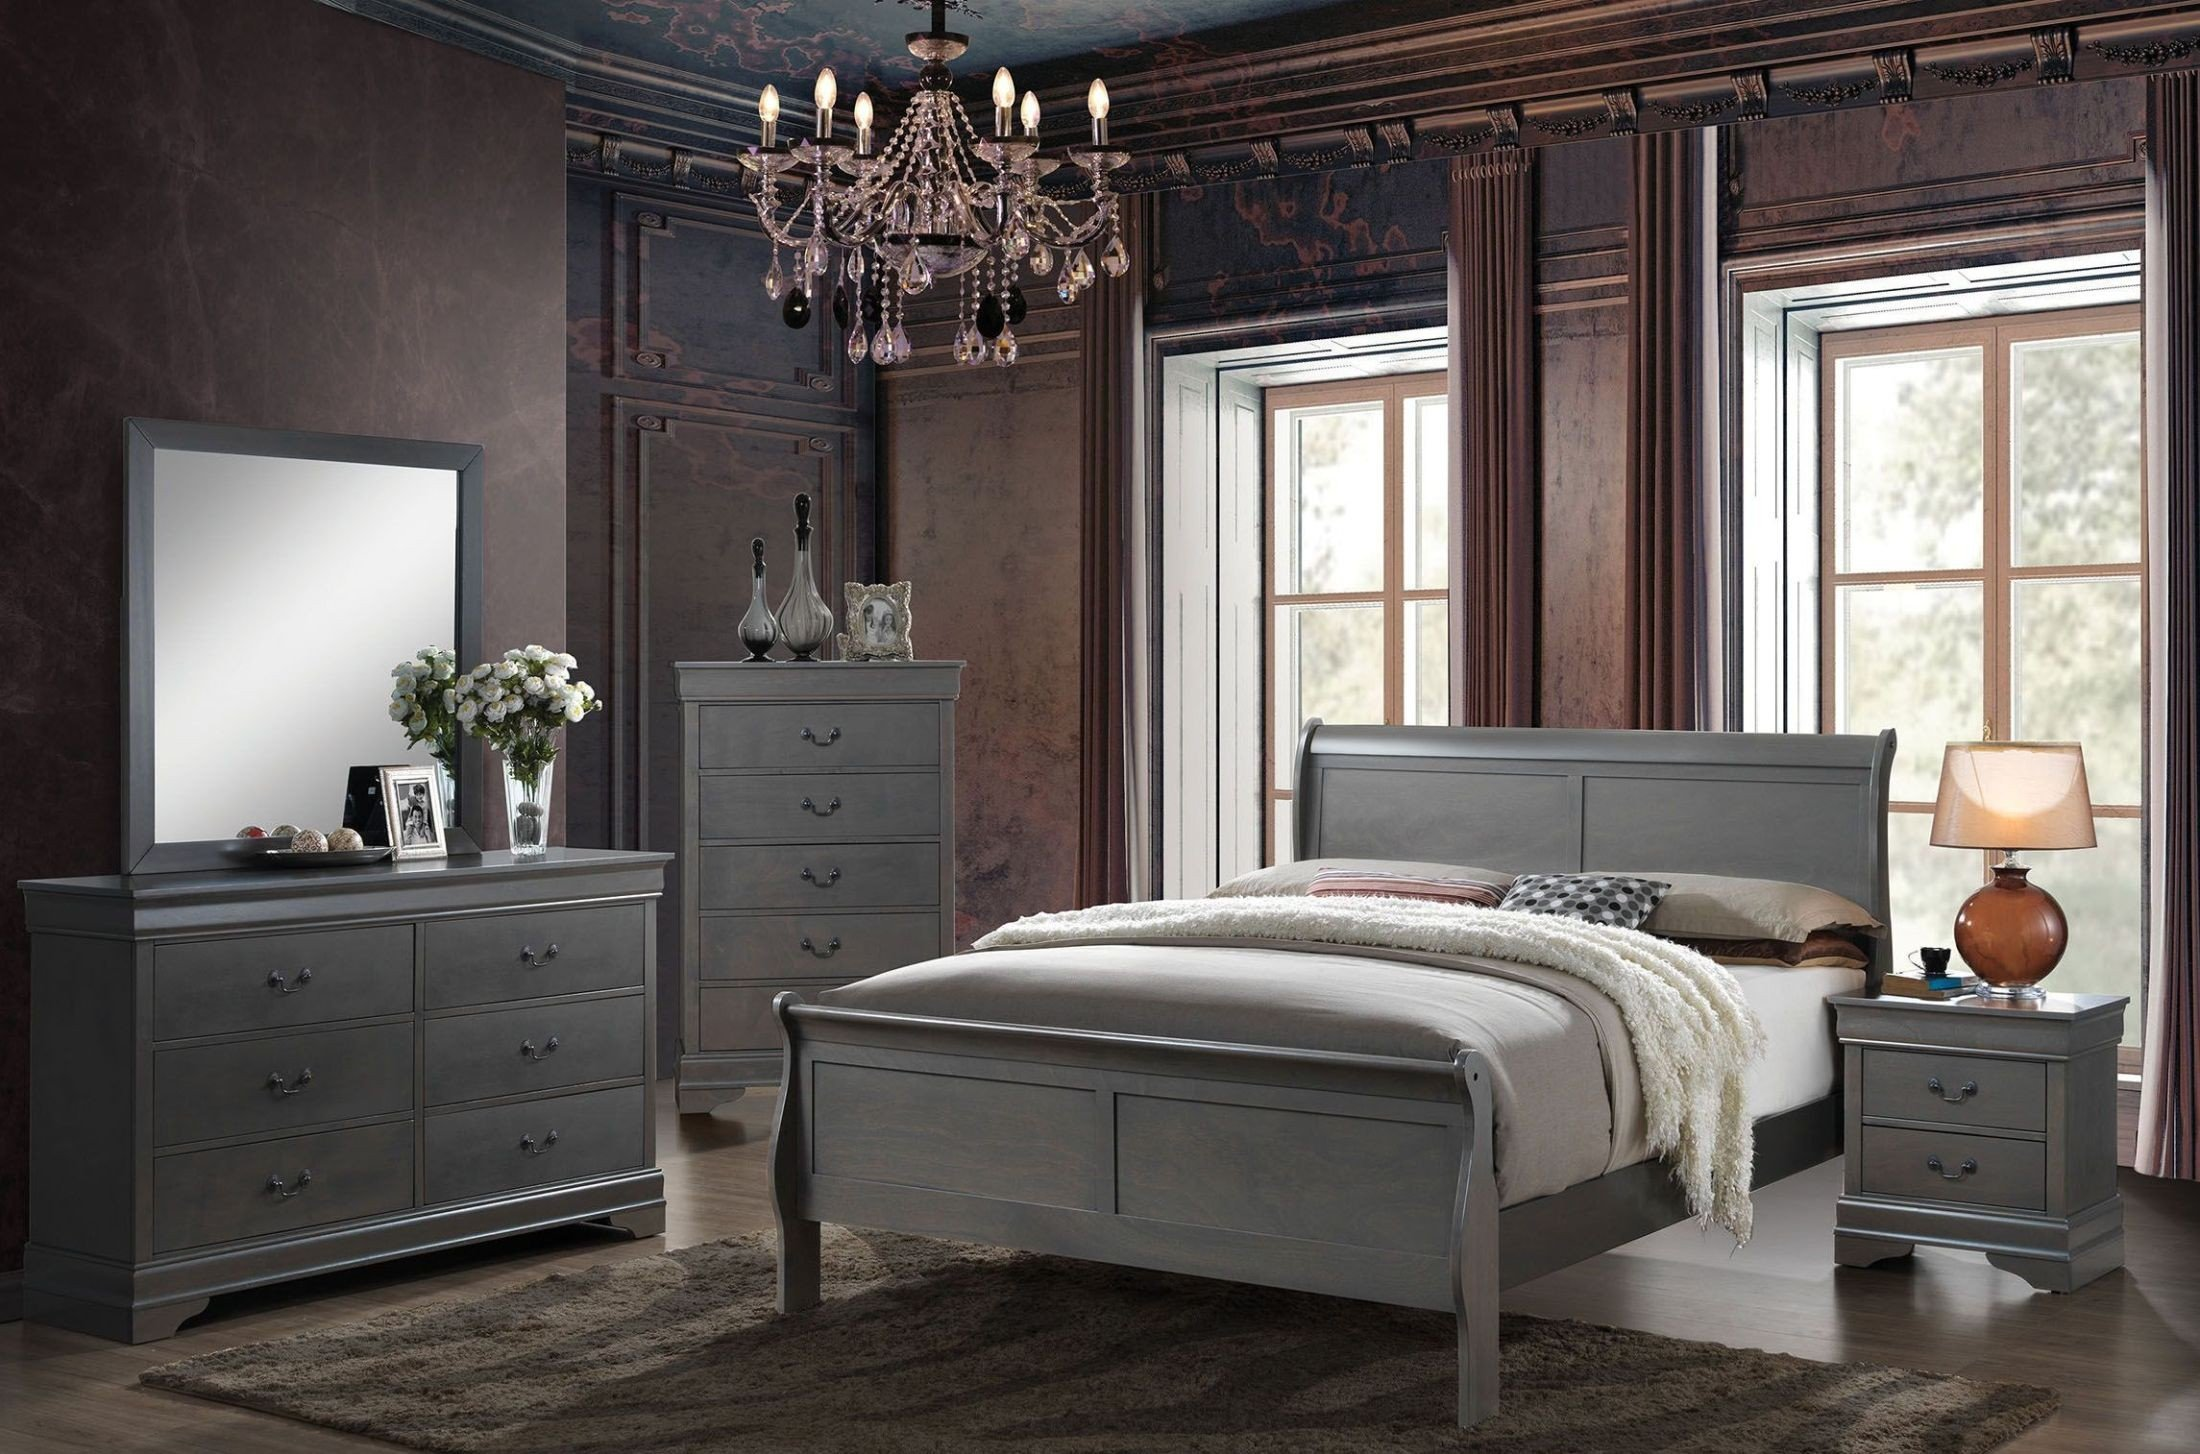 Furniture of america louis philippe iii gray sleigh - Louis philippe bedroom collection ...